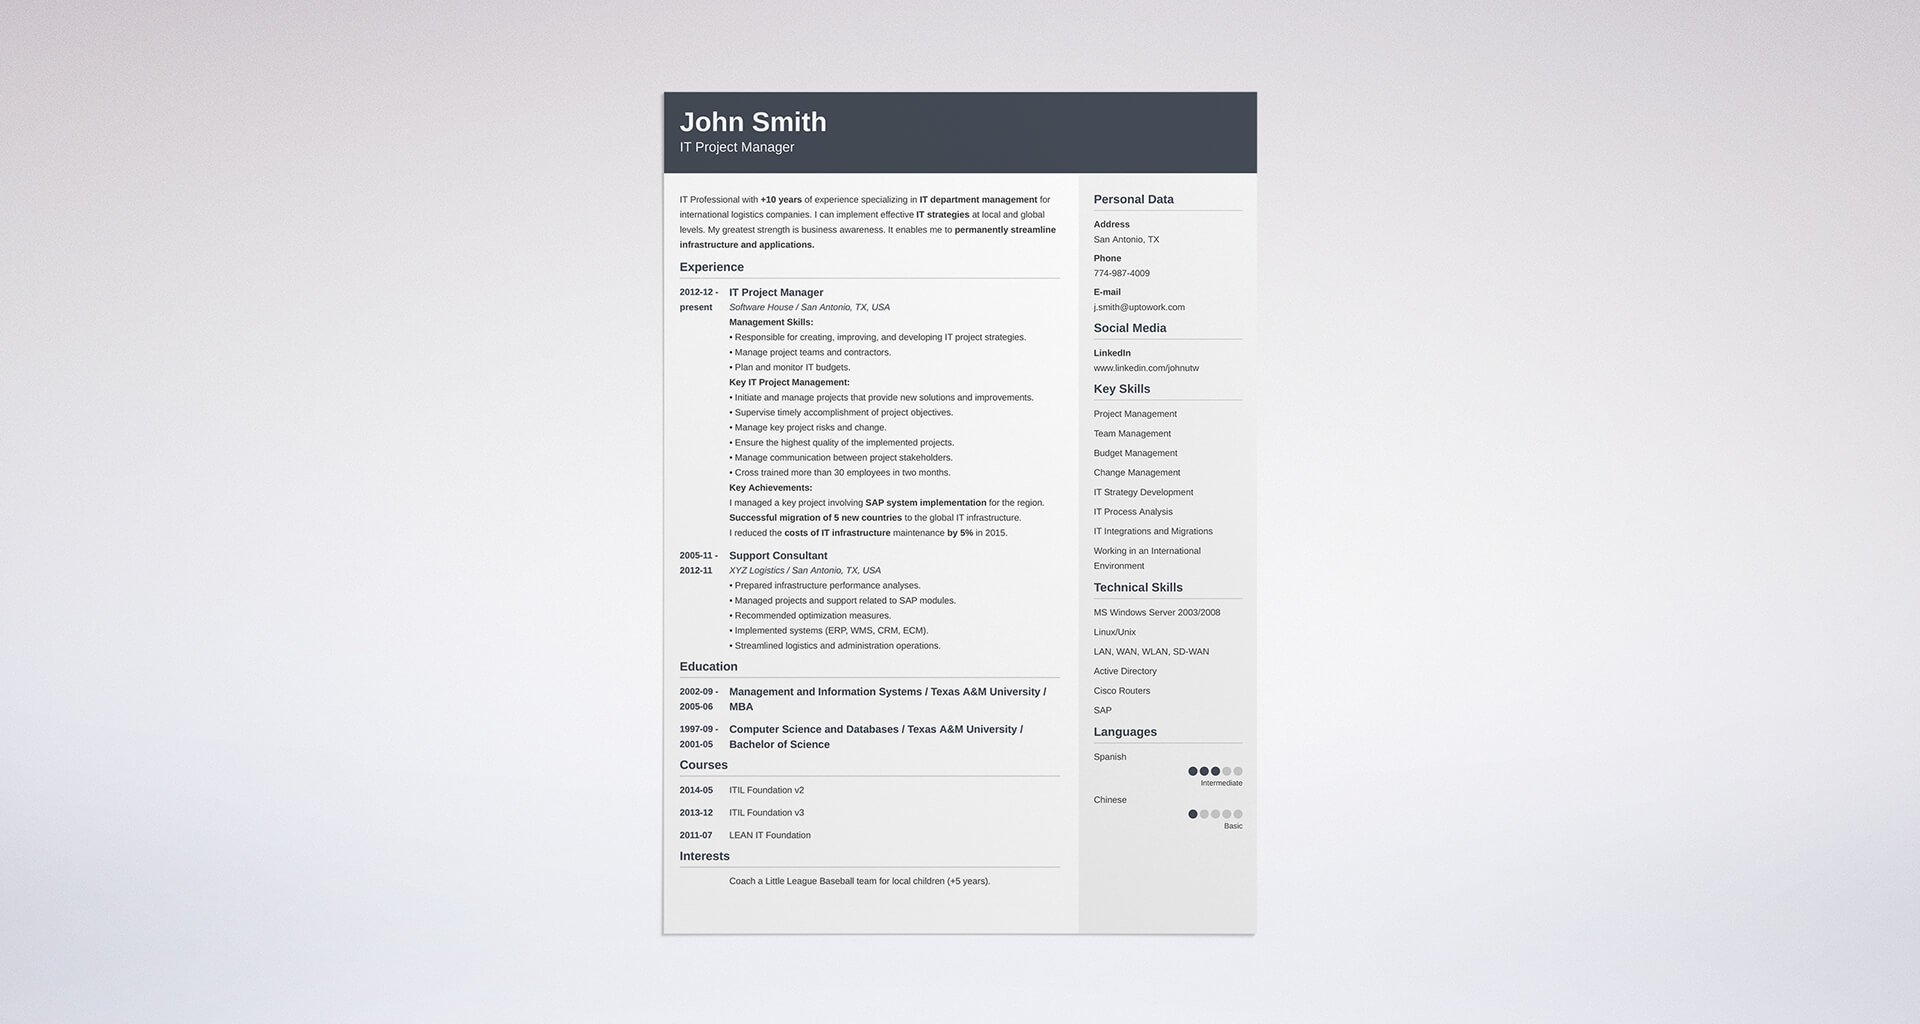 Beautiful Uptowork Regarding Best Resume Formate